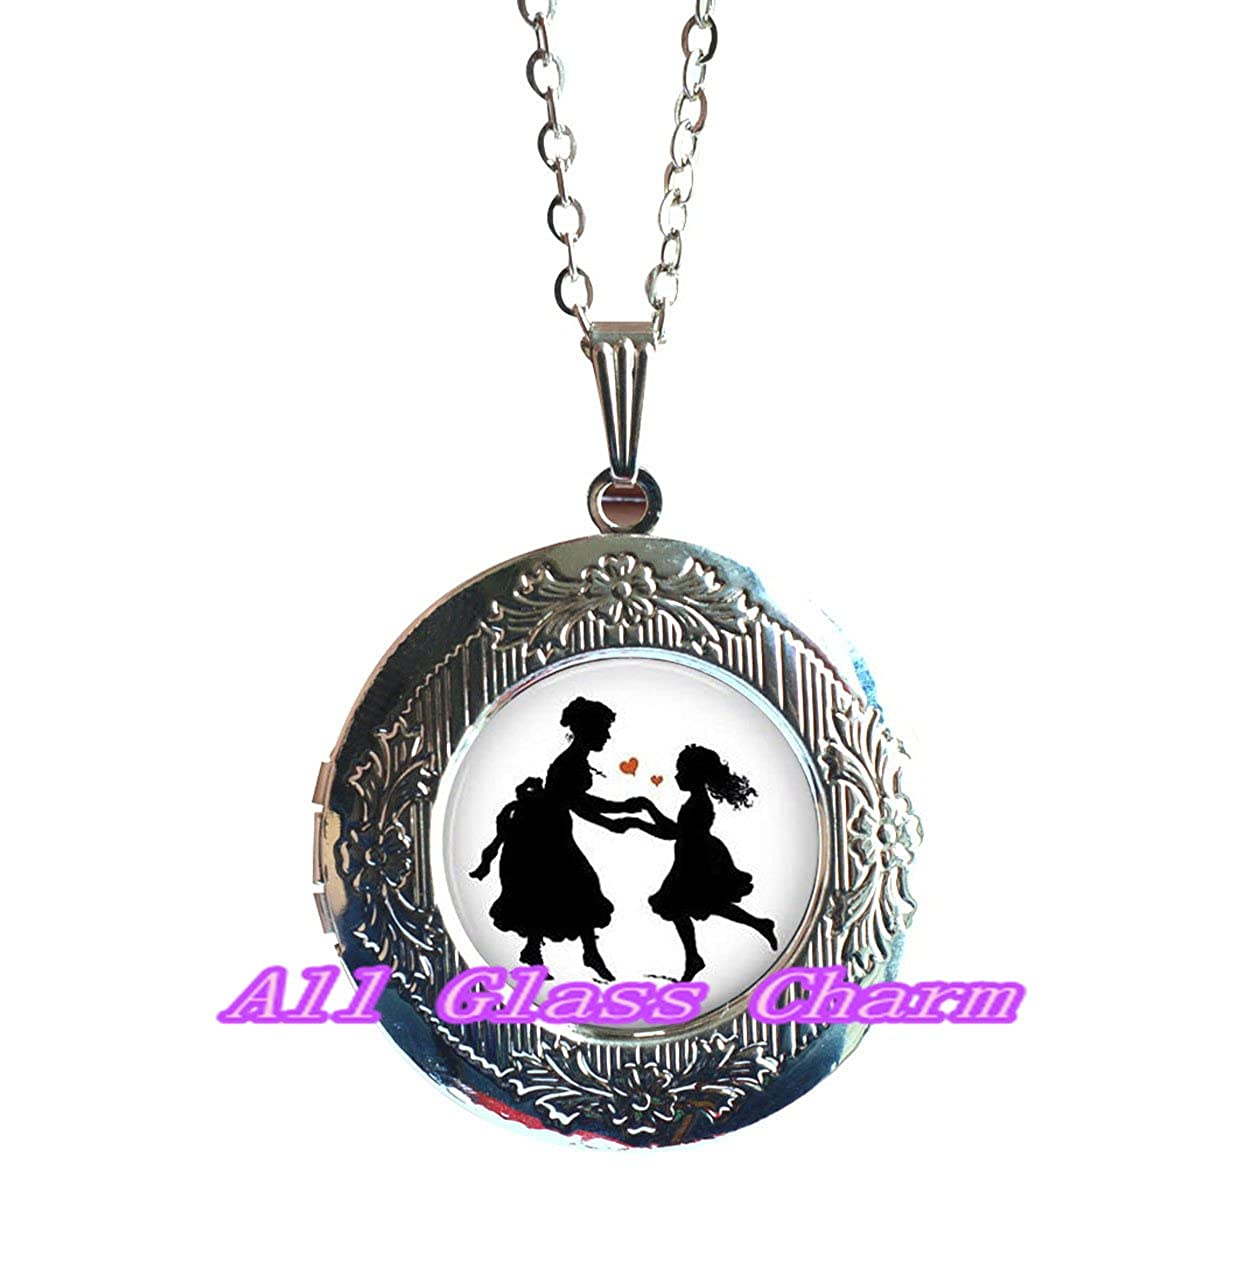 Mother and Daughter Jewelry Big Sister Gift,AS0135 Beautiful Locket Necklace,Mother and Daughter Dancing Silhouette Mothers Locket Necklace Locket Pendant Mothers Love Gift